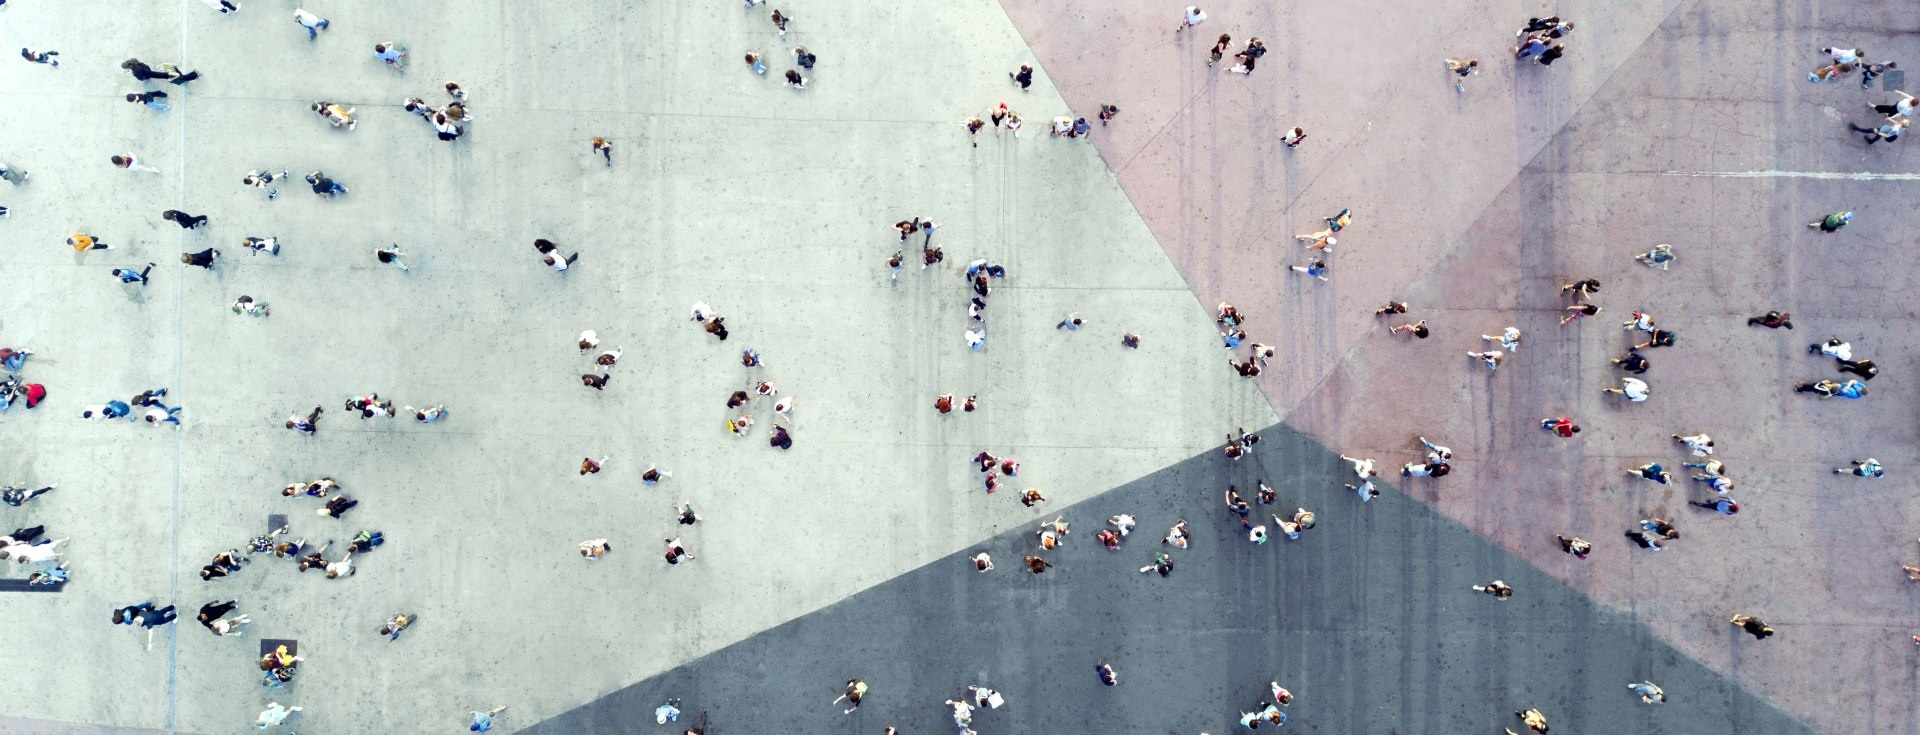 birds eye view of a group of people walking across pavement